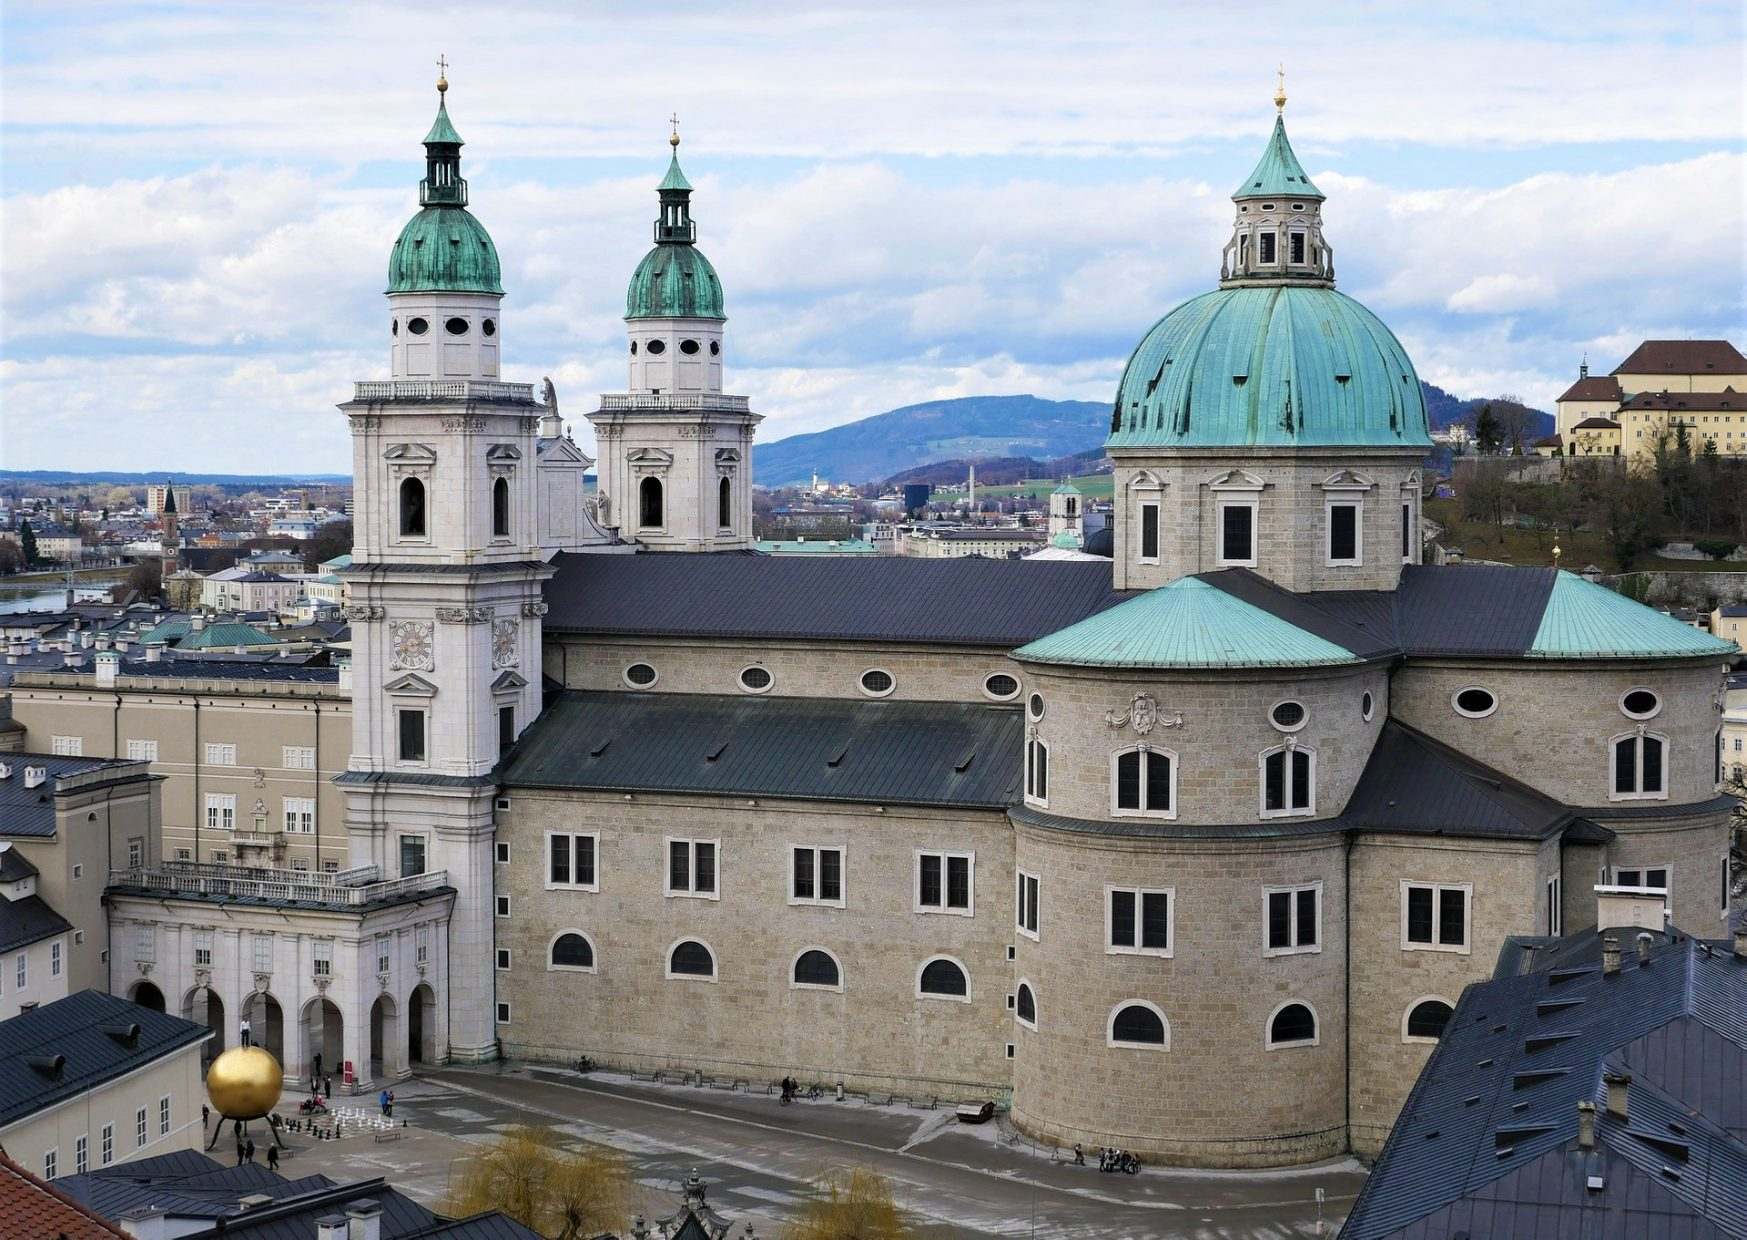 Salzburger Dom (Salzburg Cathedral) is one of the best things to see in Salzburg- photo by Voices of Travel